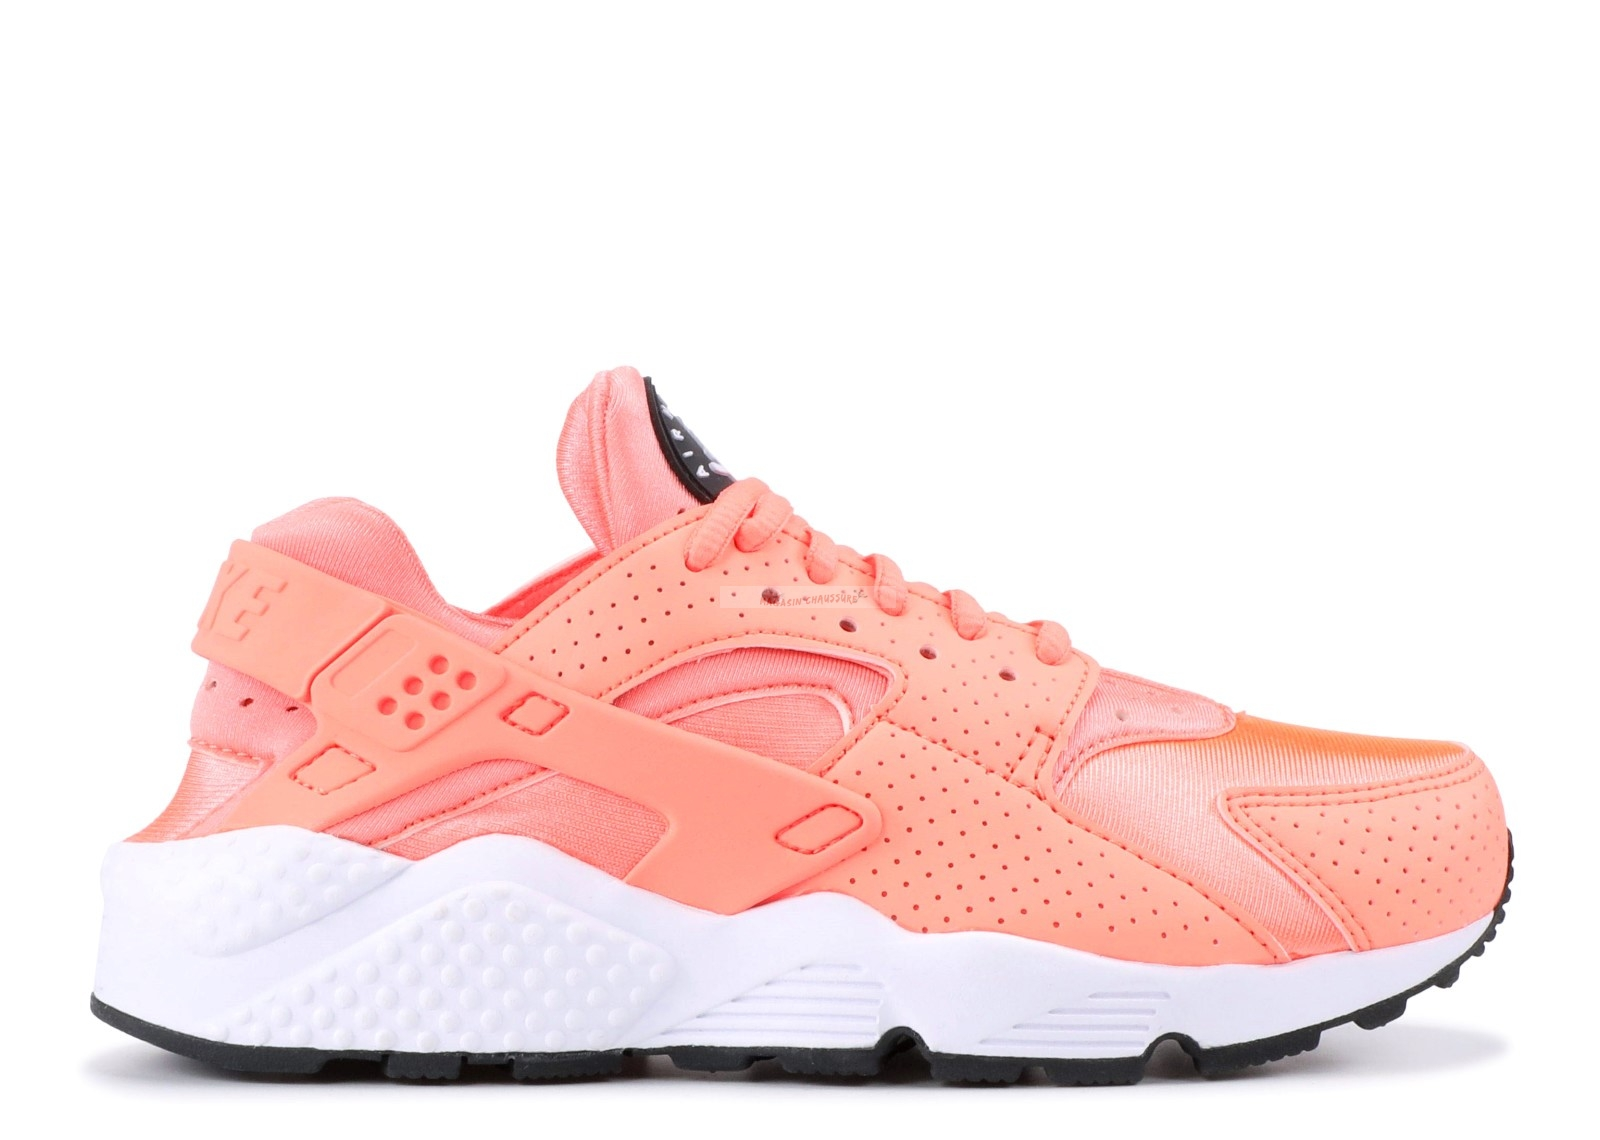 "Nike Air Huarache Run - Femme ""Atomique Rose"" Pink (634835-603) Chaussure de Basket"